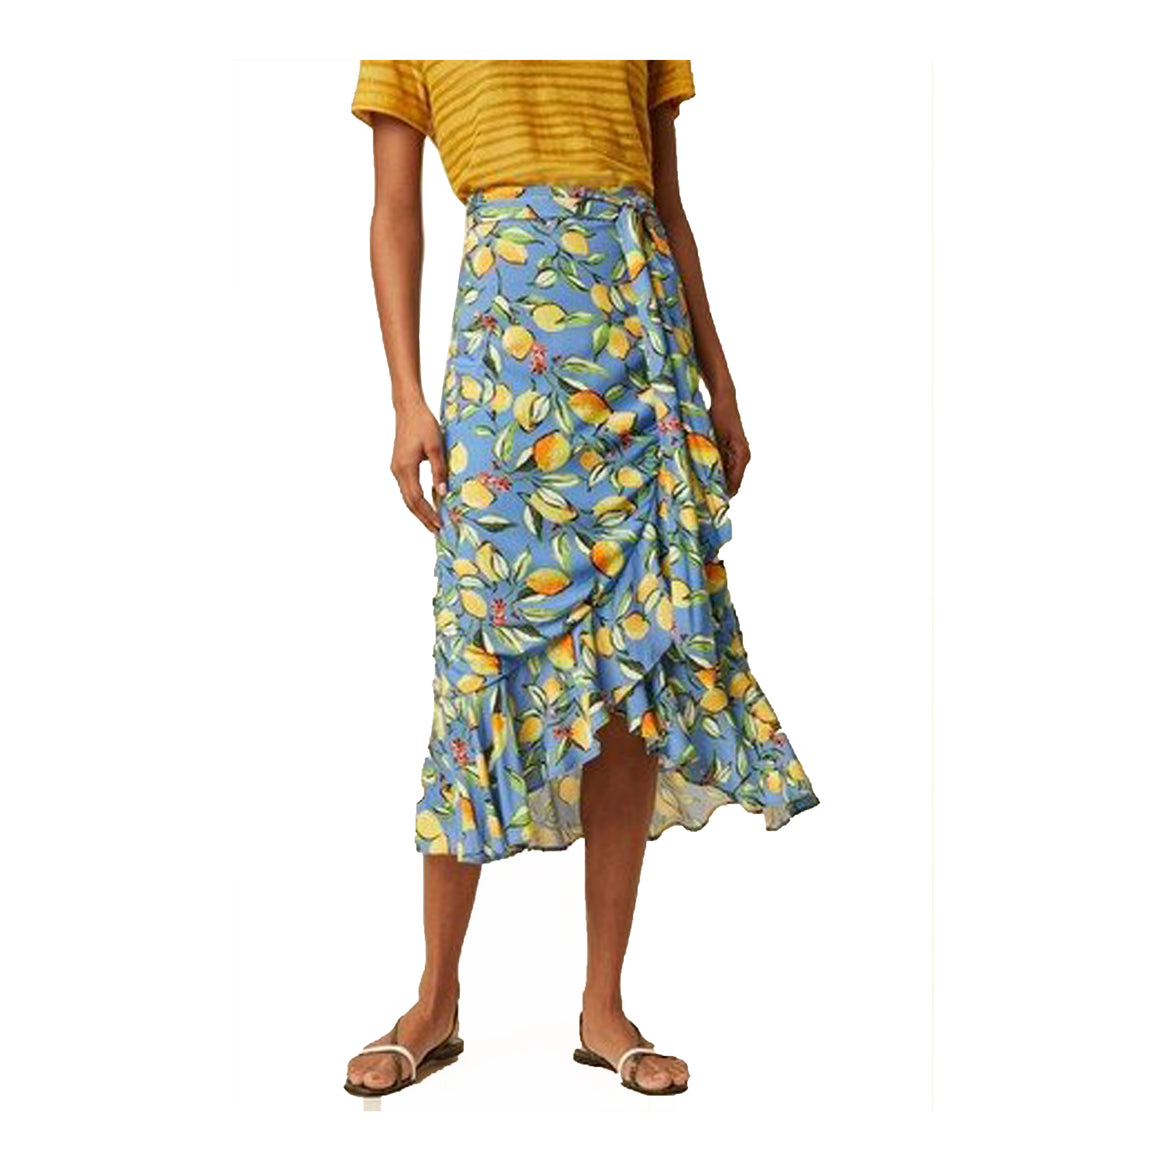 Sorrento Lemon Print Skirt for Women in Blue